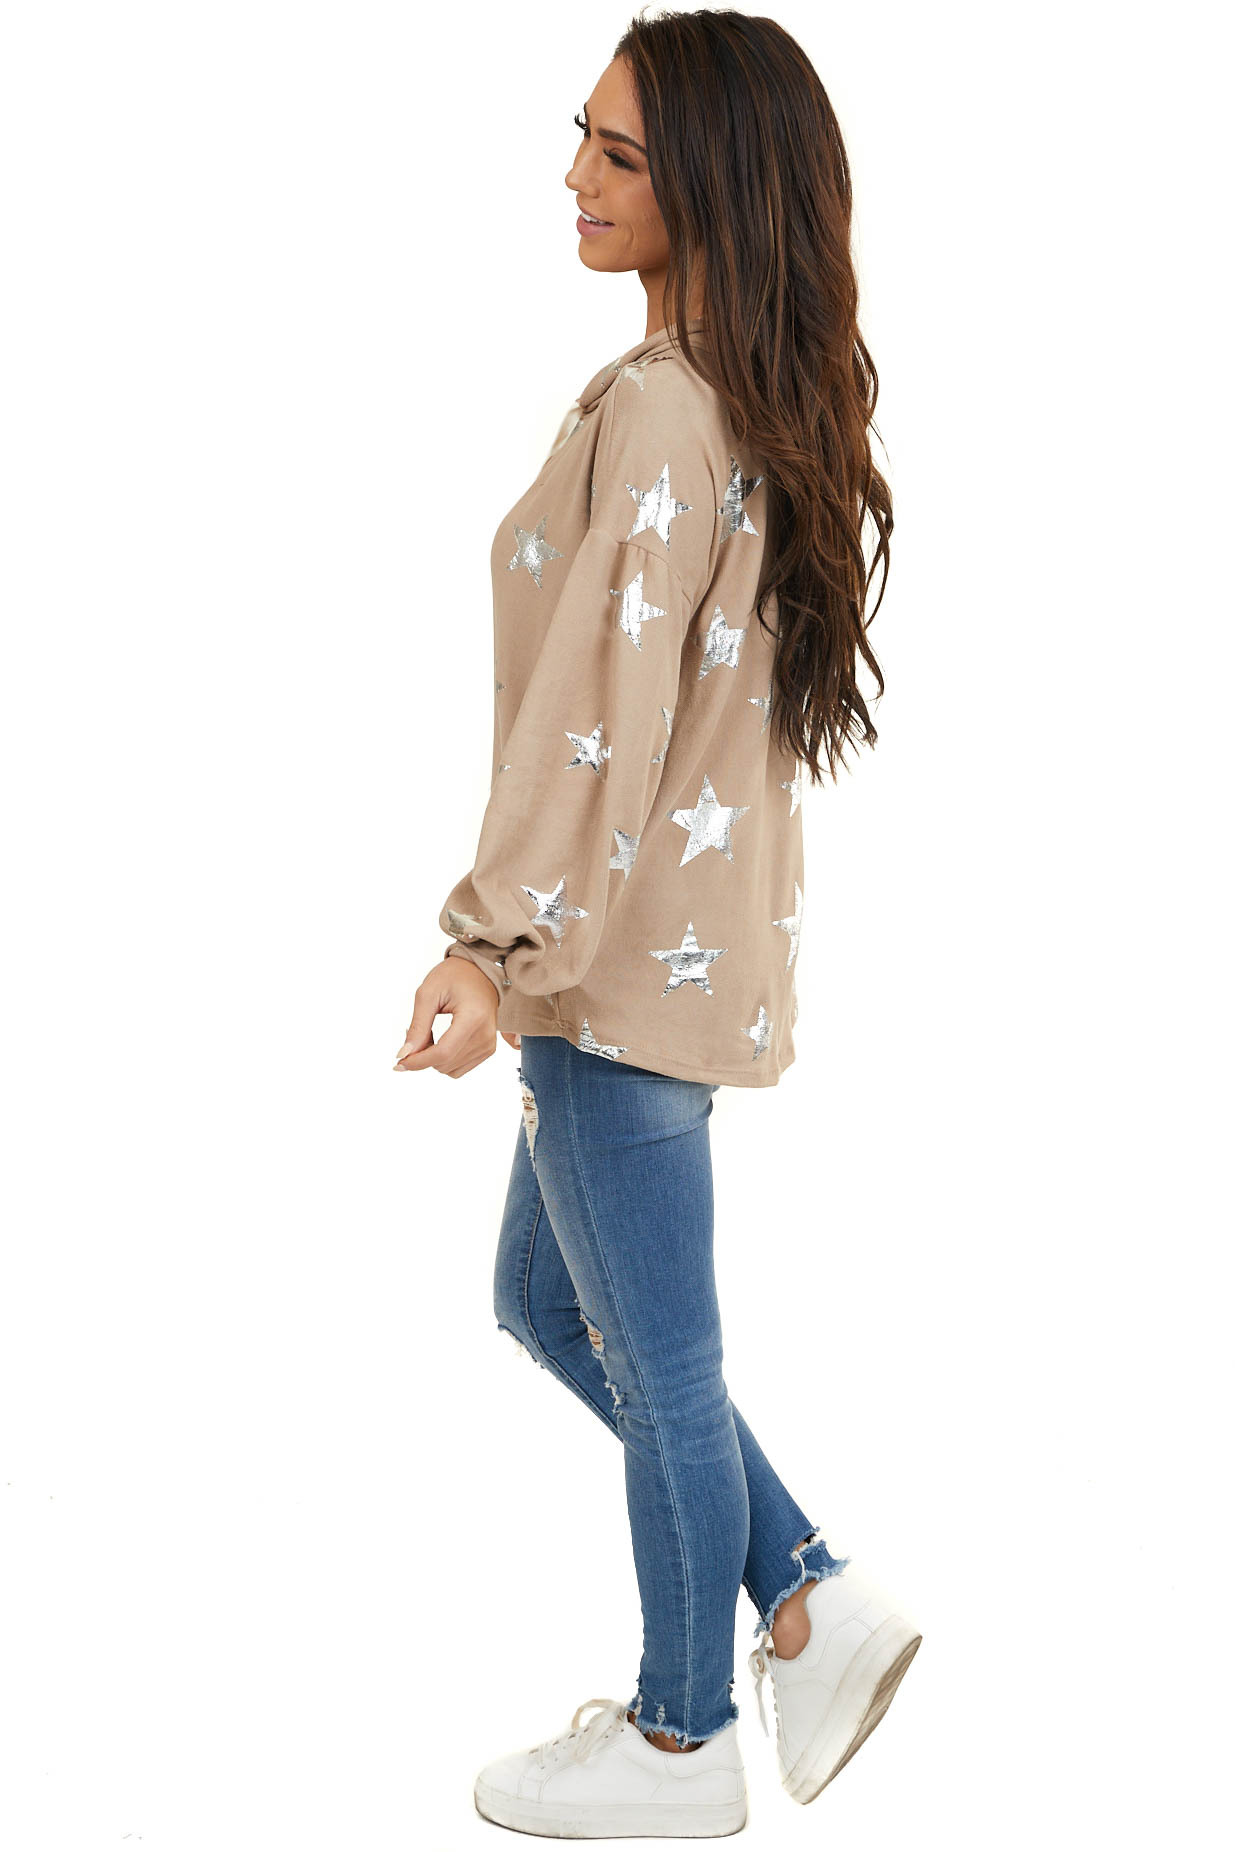 Dusty Rose Hooded Top with Distressed Silver Stars